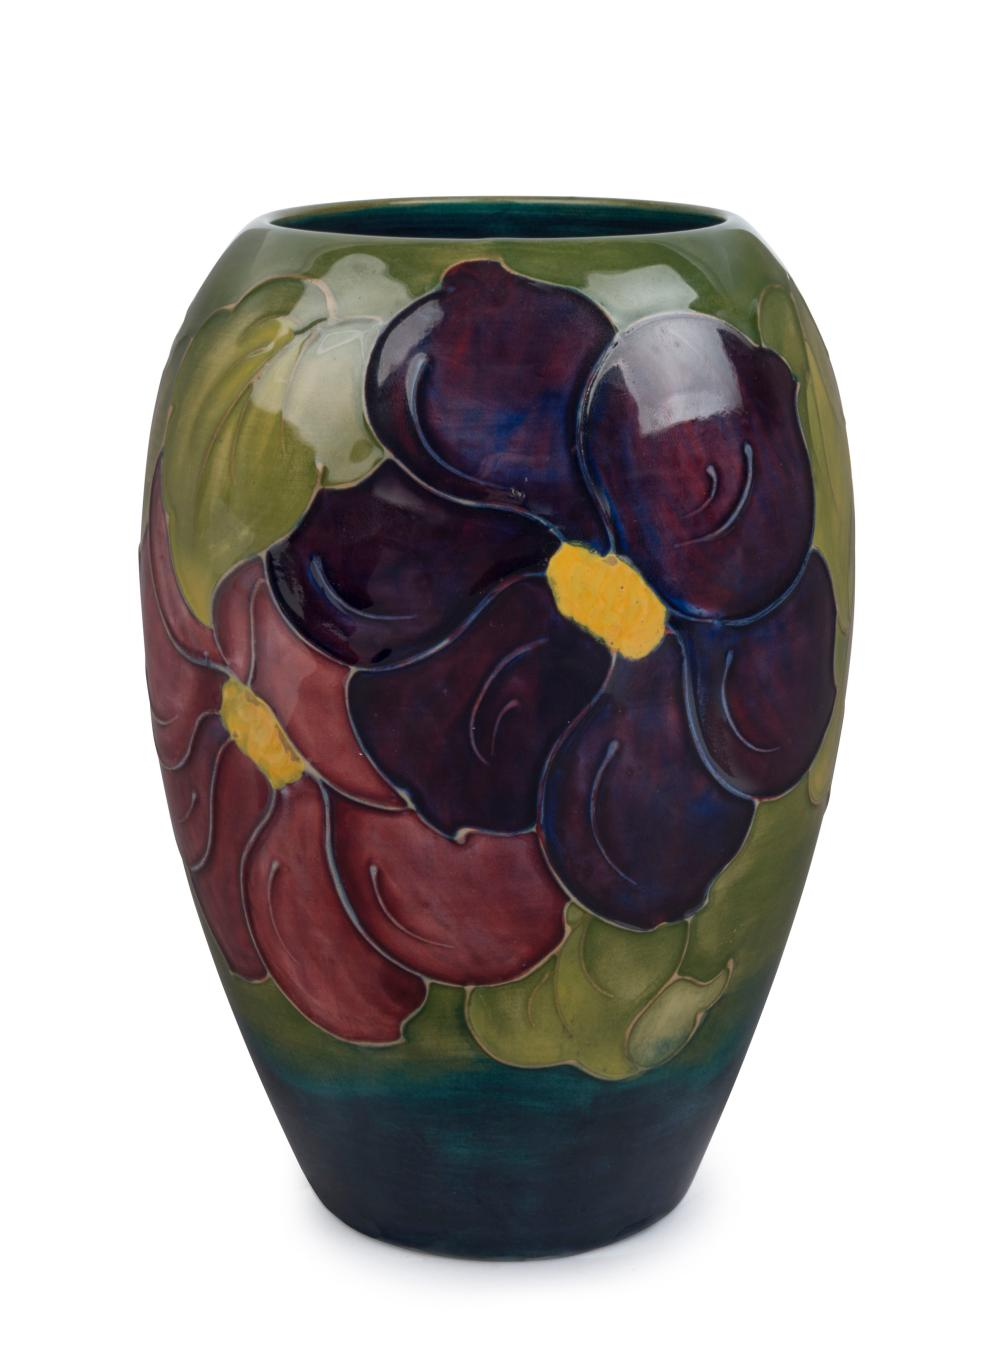 """MOORCROFT """"Clematis"""" English pottery vase on green blue ground, circa 1920s, stamped """"Moorcroft, Made in England"""", with hand signed """"W. M"""" monogram, 17.5cm high"""